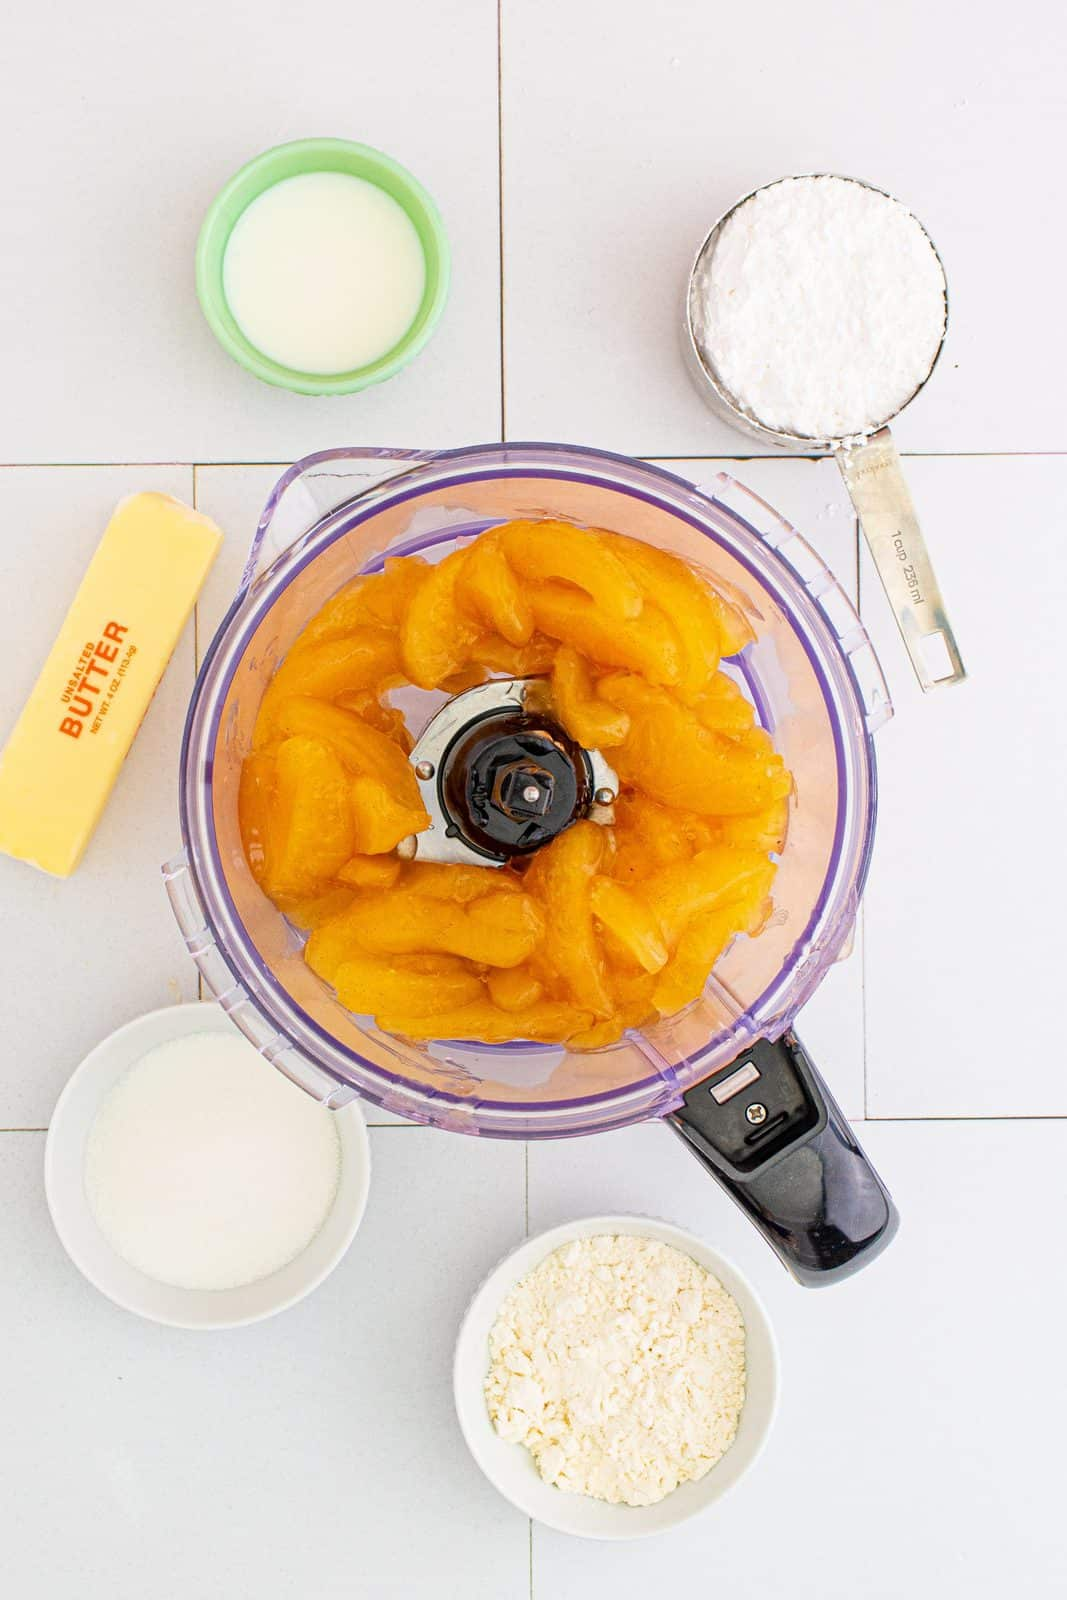 Apple pie filling added to food processor.